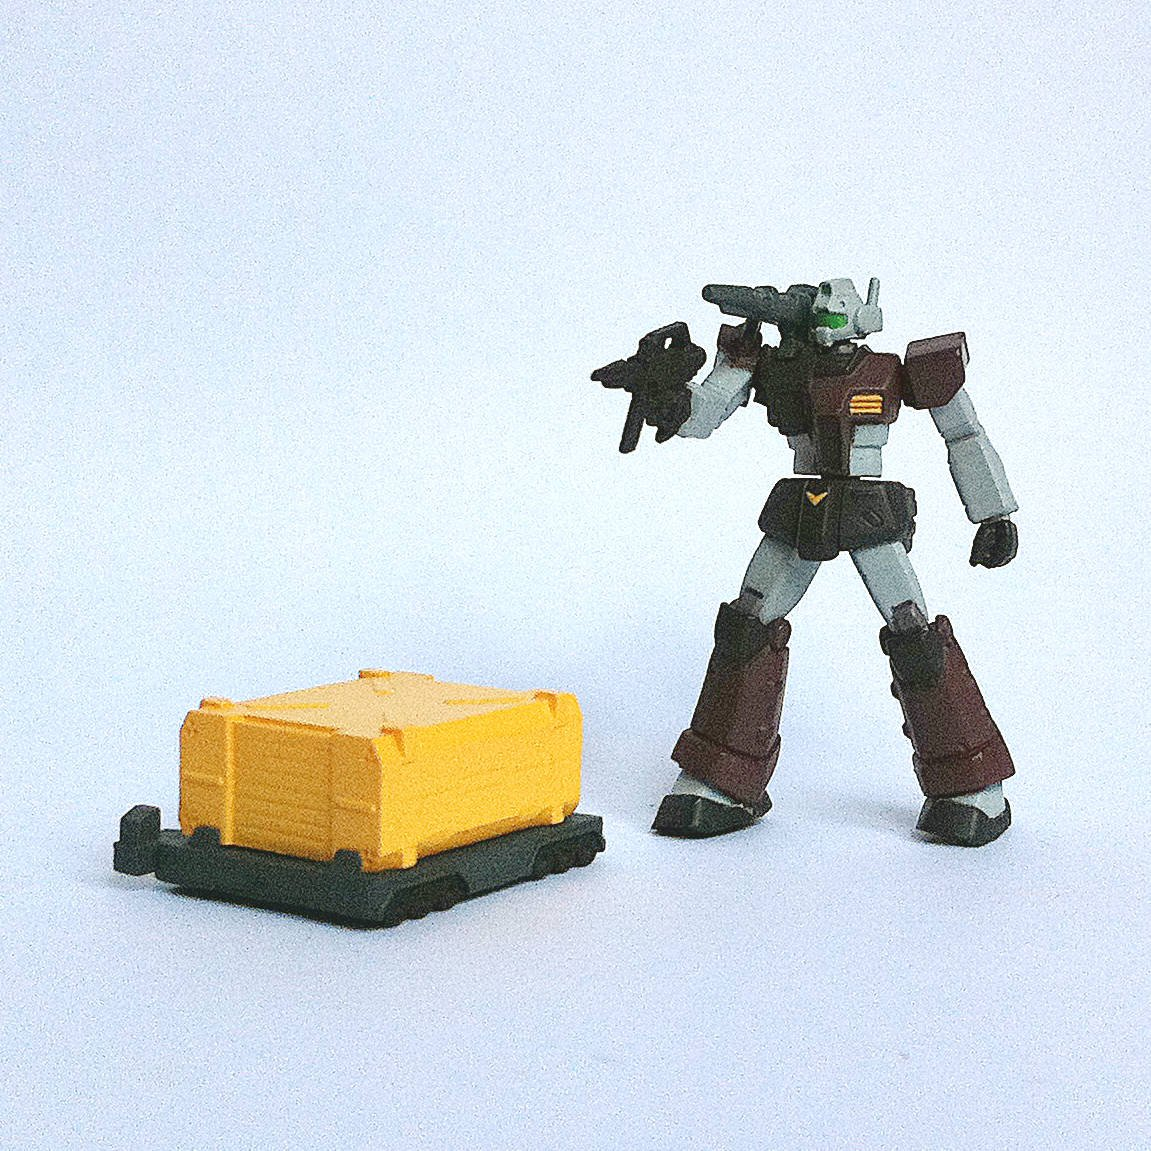 RGC-80 GM Cannon from HG Gundam MS Selection by Bandai